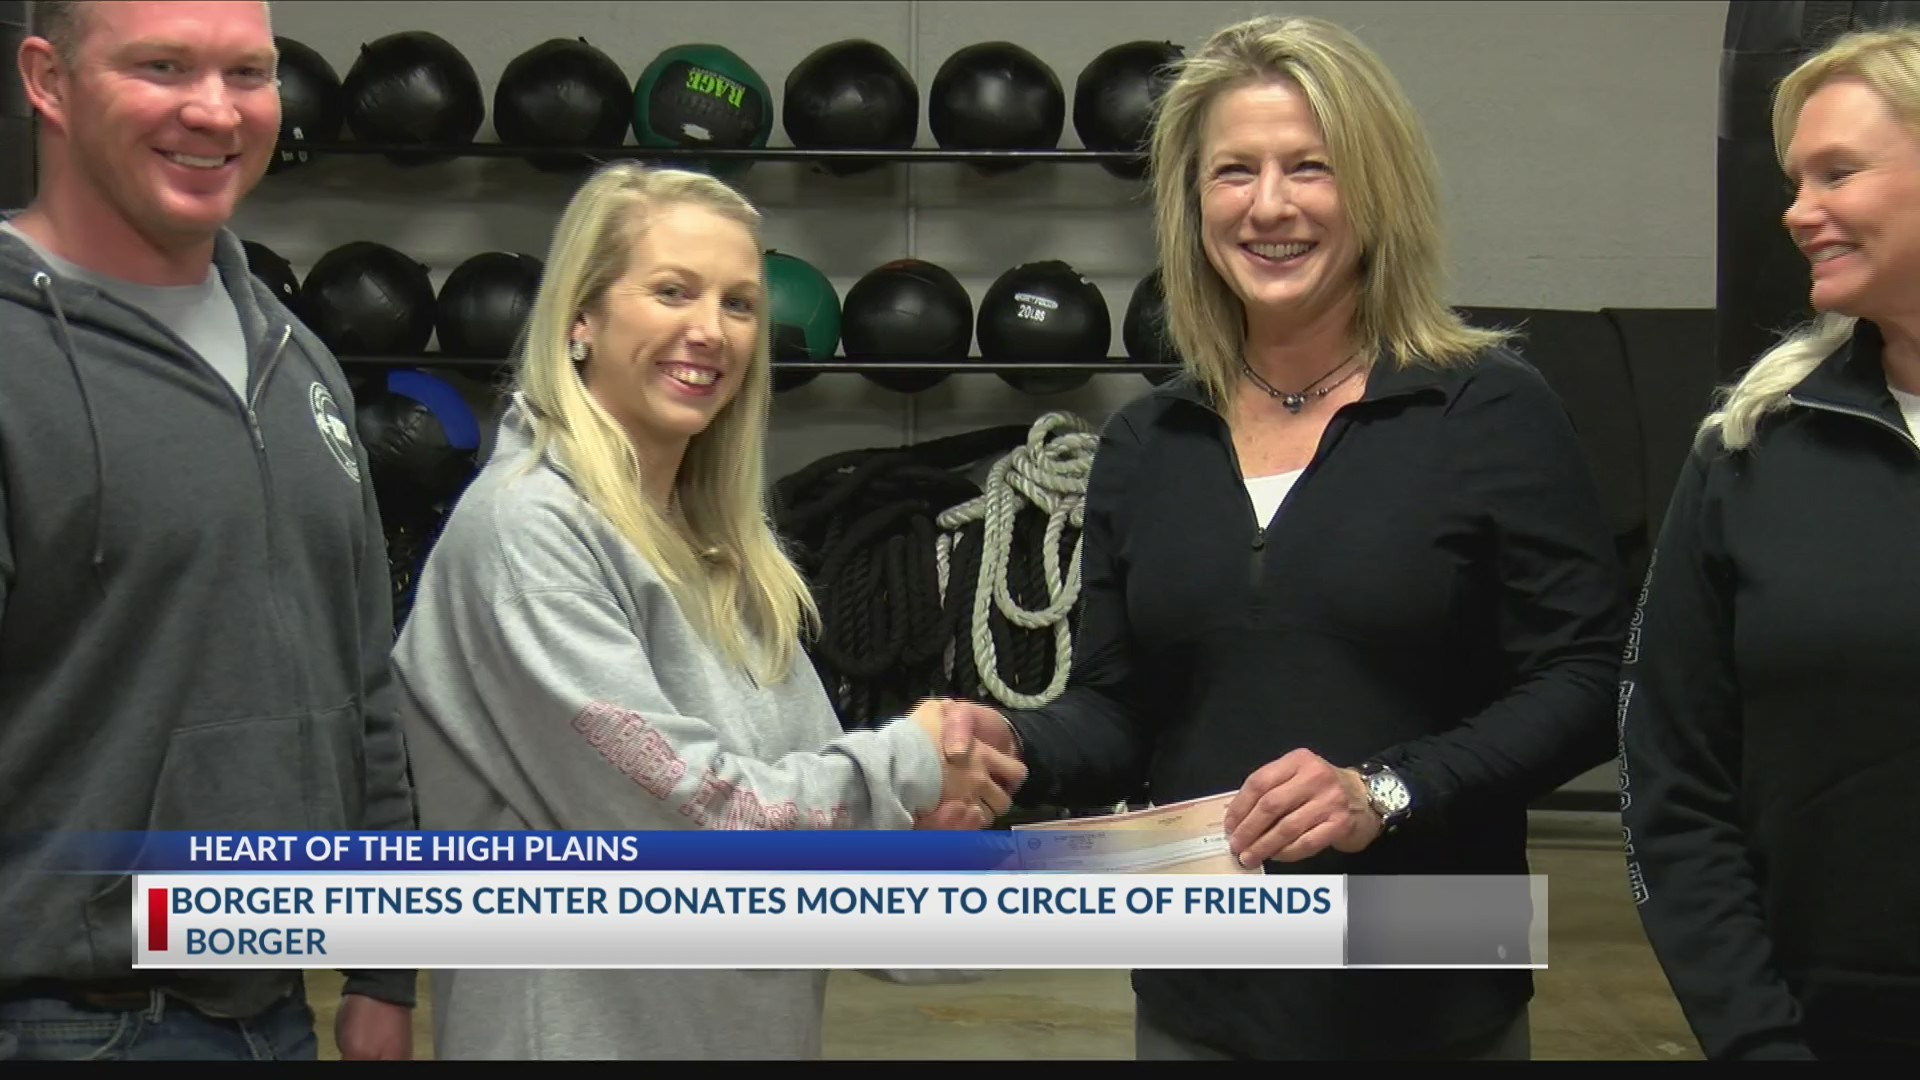 Borger Fitness Center Donates to Circle of Friends